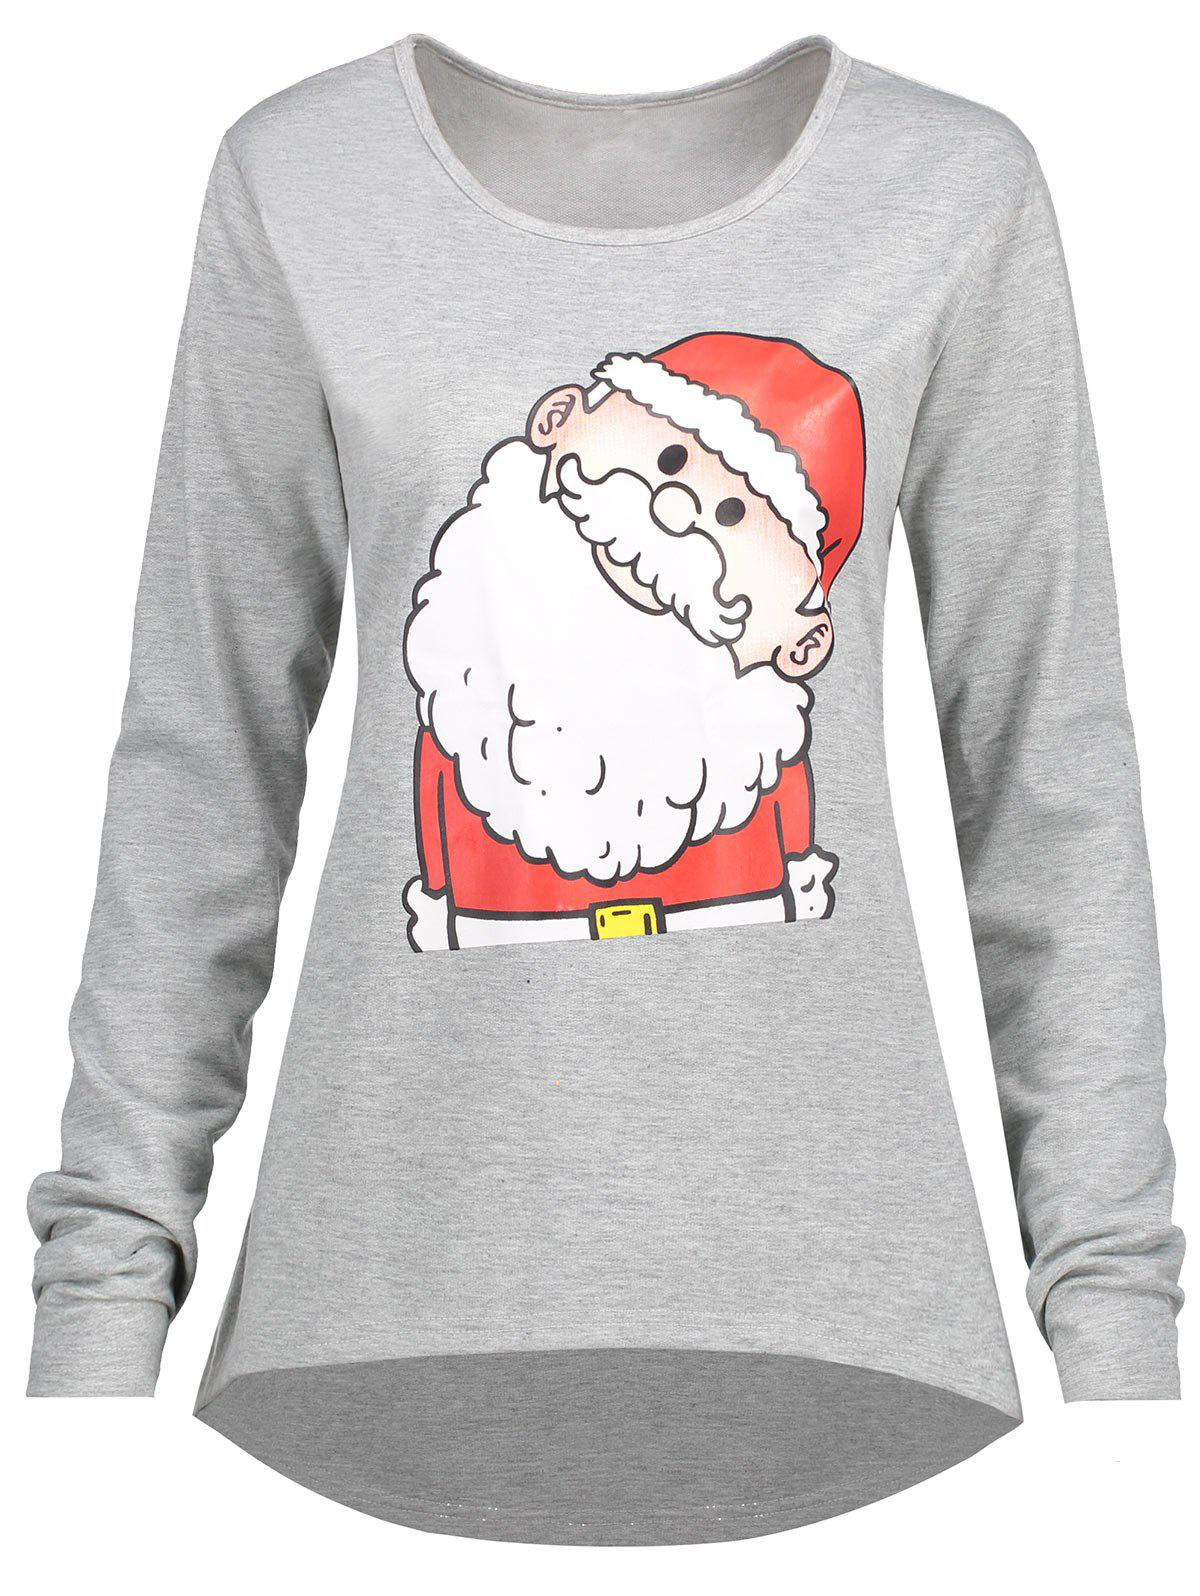 Christmas Santa Claus Plus Size High Low T-shirtWOMEN<br><br>Size: 3XL; Color: GRAY; Material: Cotton,Polyester; Shirt Length: Long; Sleeve Length: Full; Collar: Round Neck; Style: Casual; Season: Fall,Spring,Winter; Pattern Type: Print; Weight: 0.3200kg; Package Contents: 1 x T-shirt;